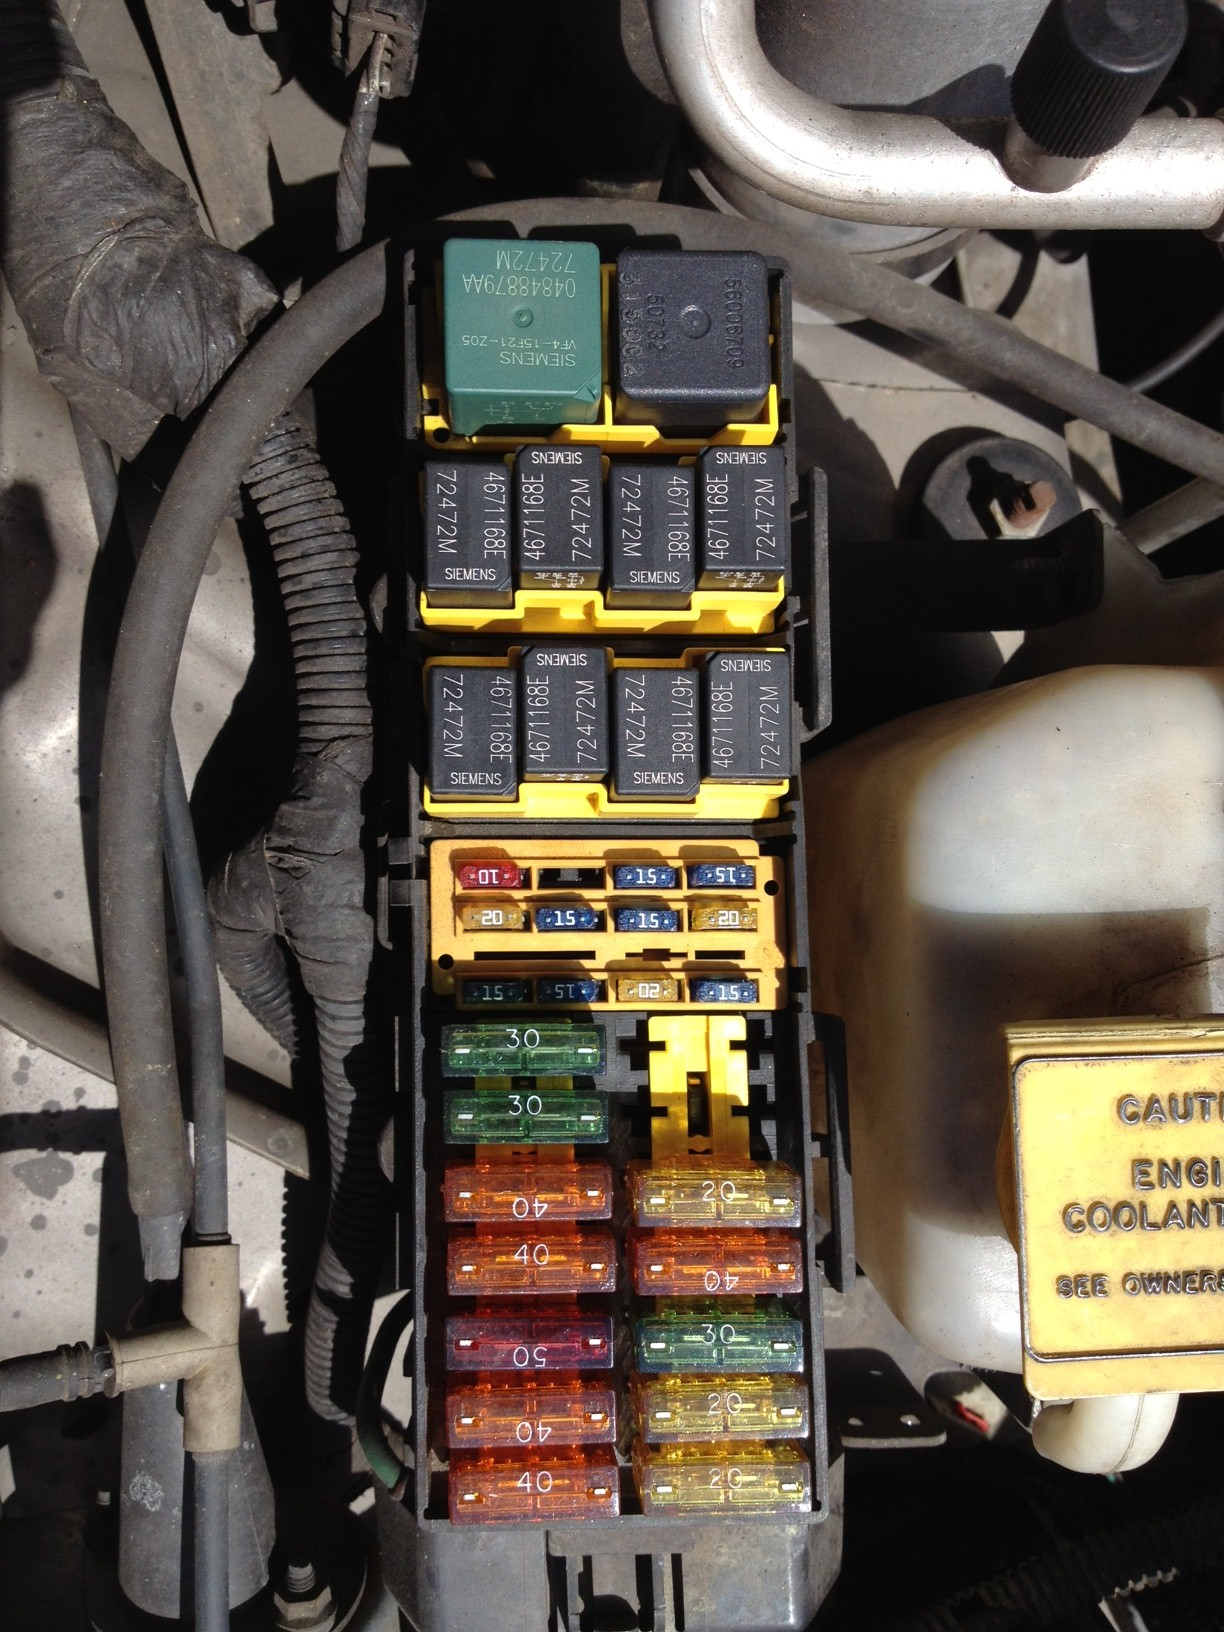 2000_Jeep_Cherokee_PDC_overhead jeep cherokee electrical 1997 2001 xj fuse & relay 1998 jeep grand cherokee under hood fuse box diagram at creativeand.co